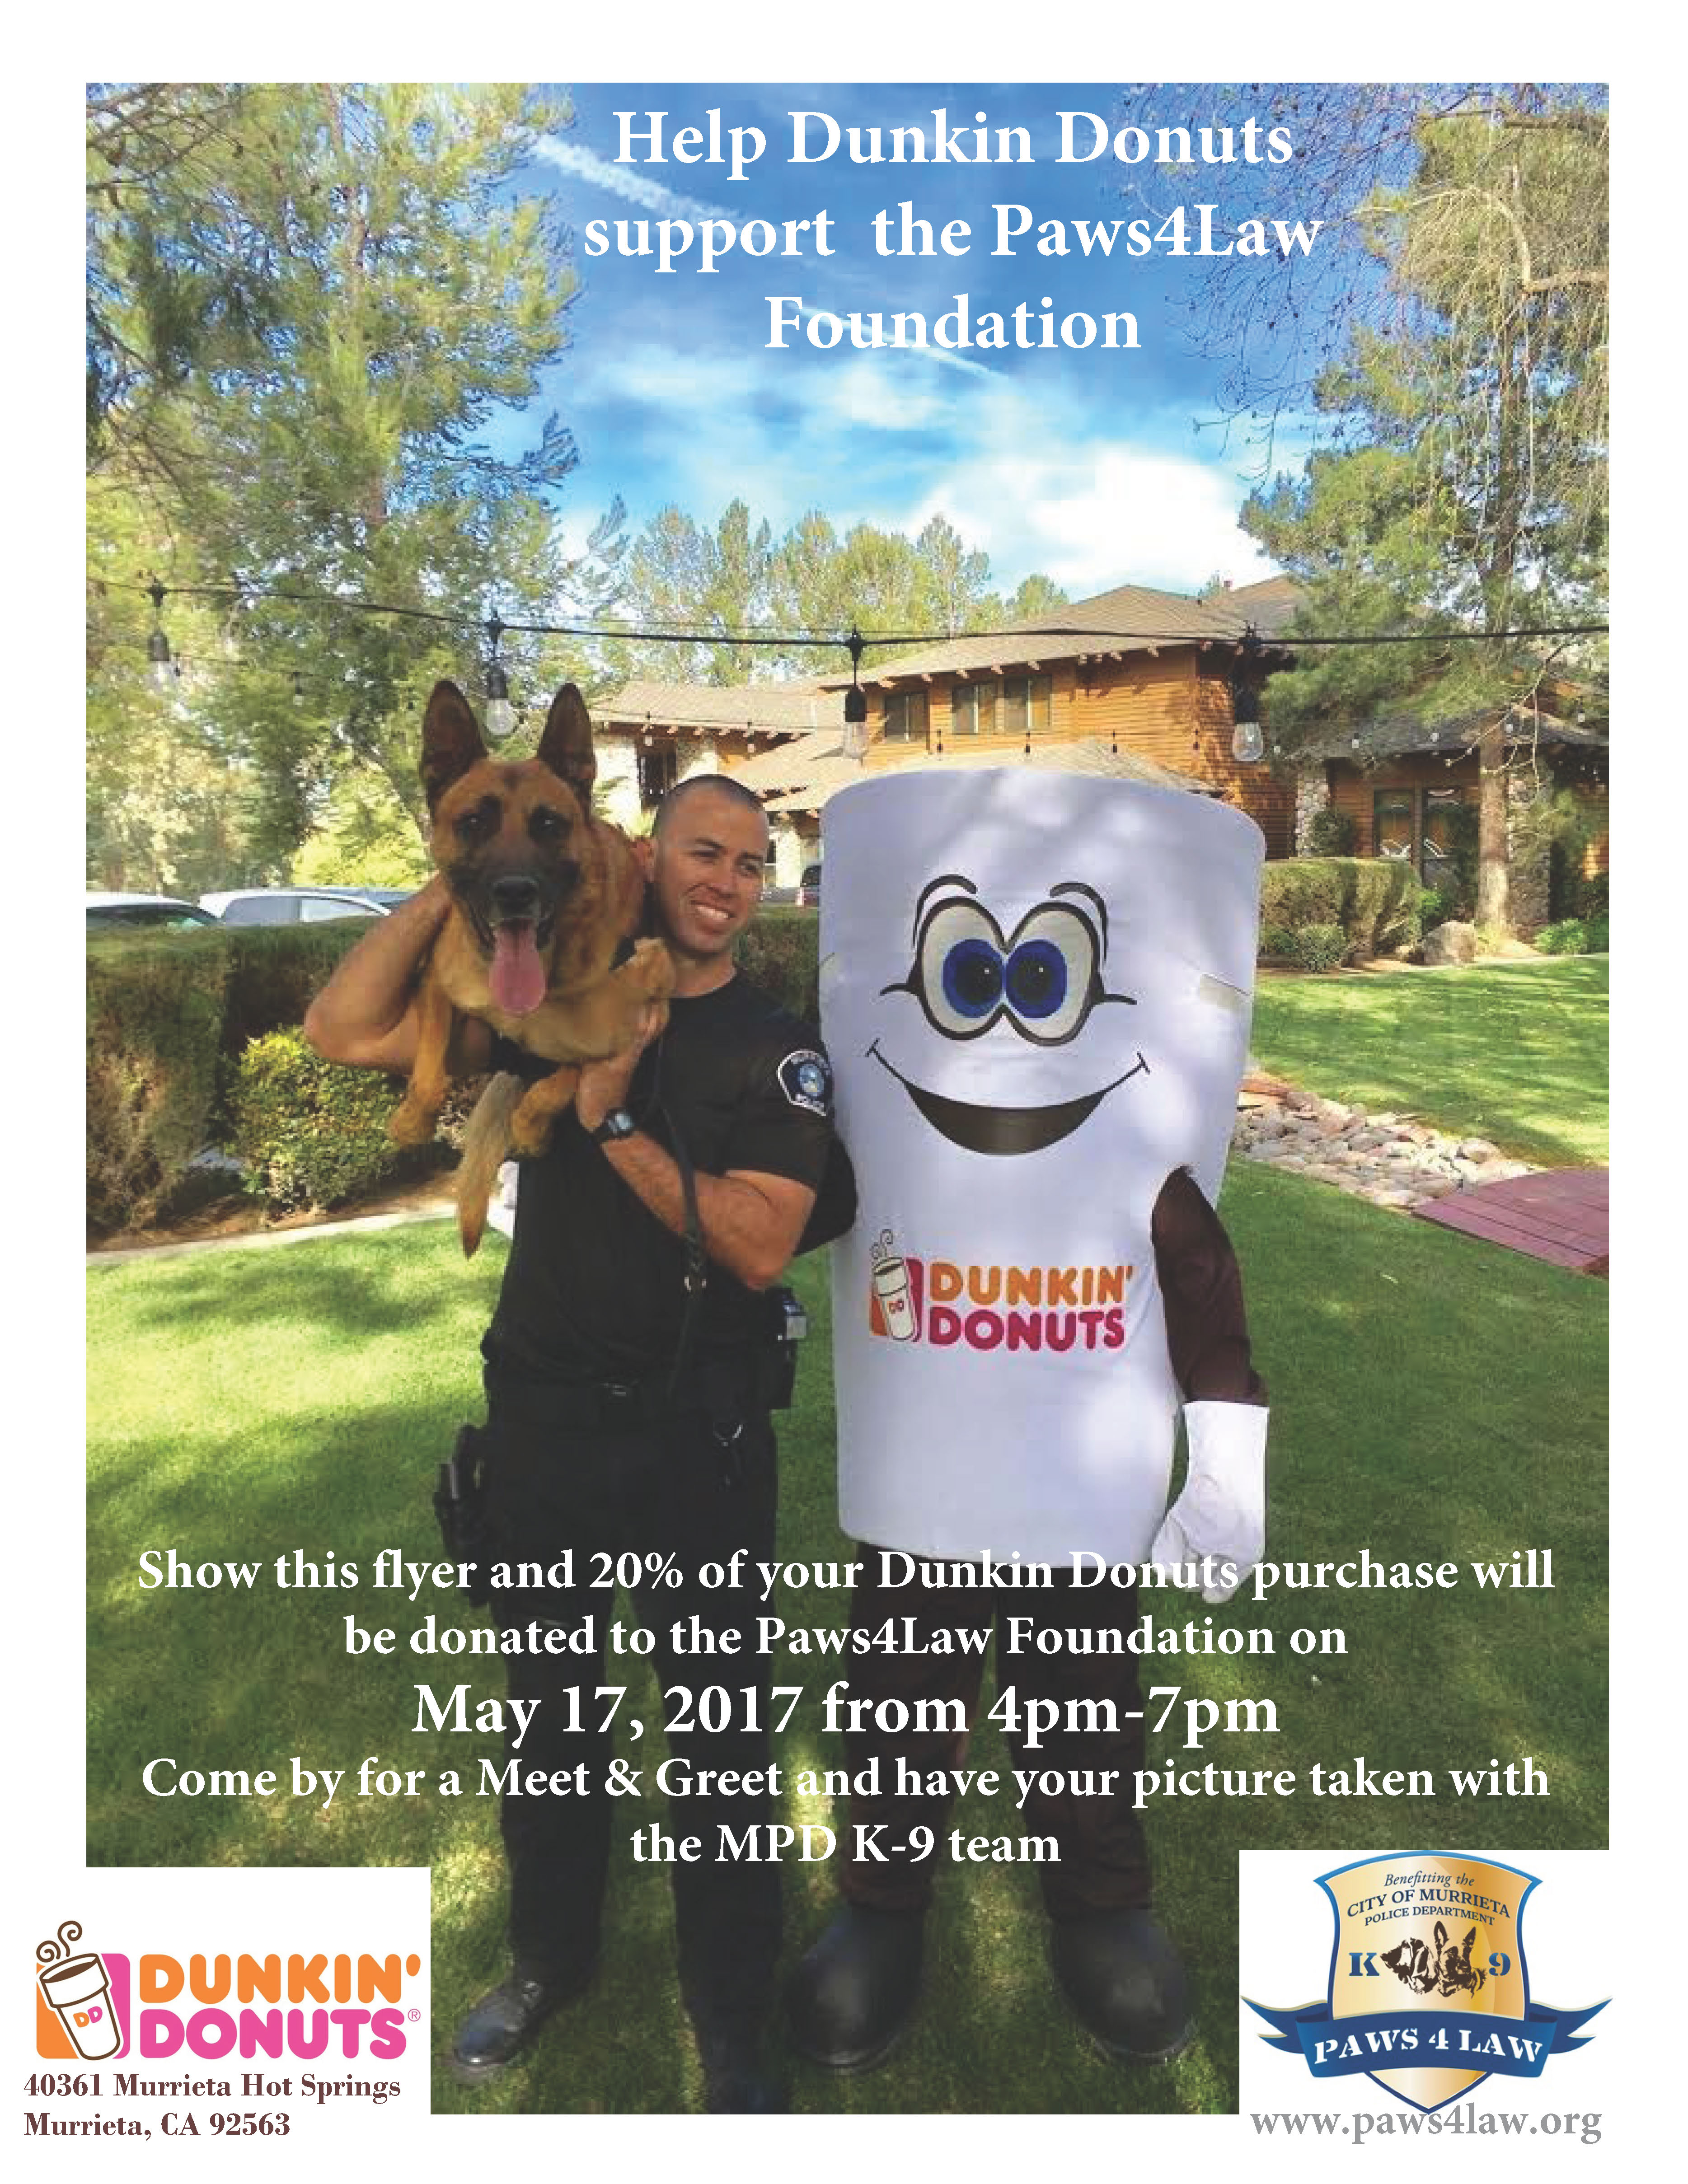 Dunkin Donuts Fundraiser for Paws4Law